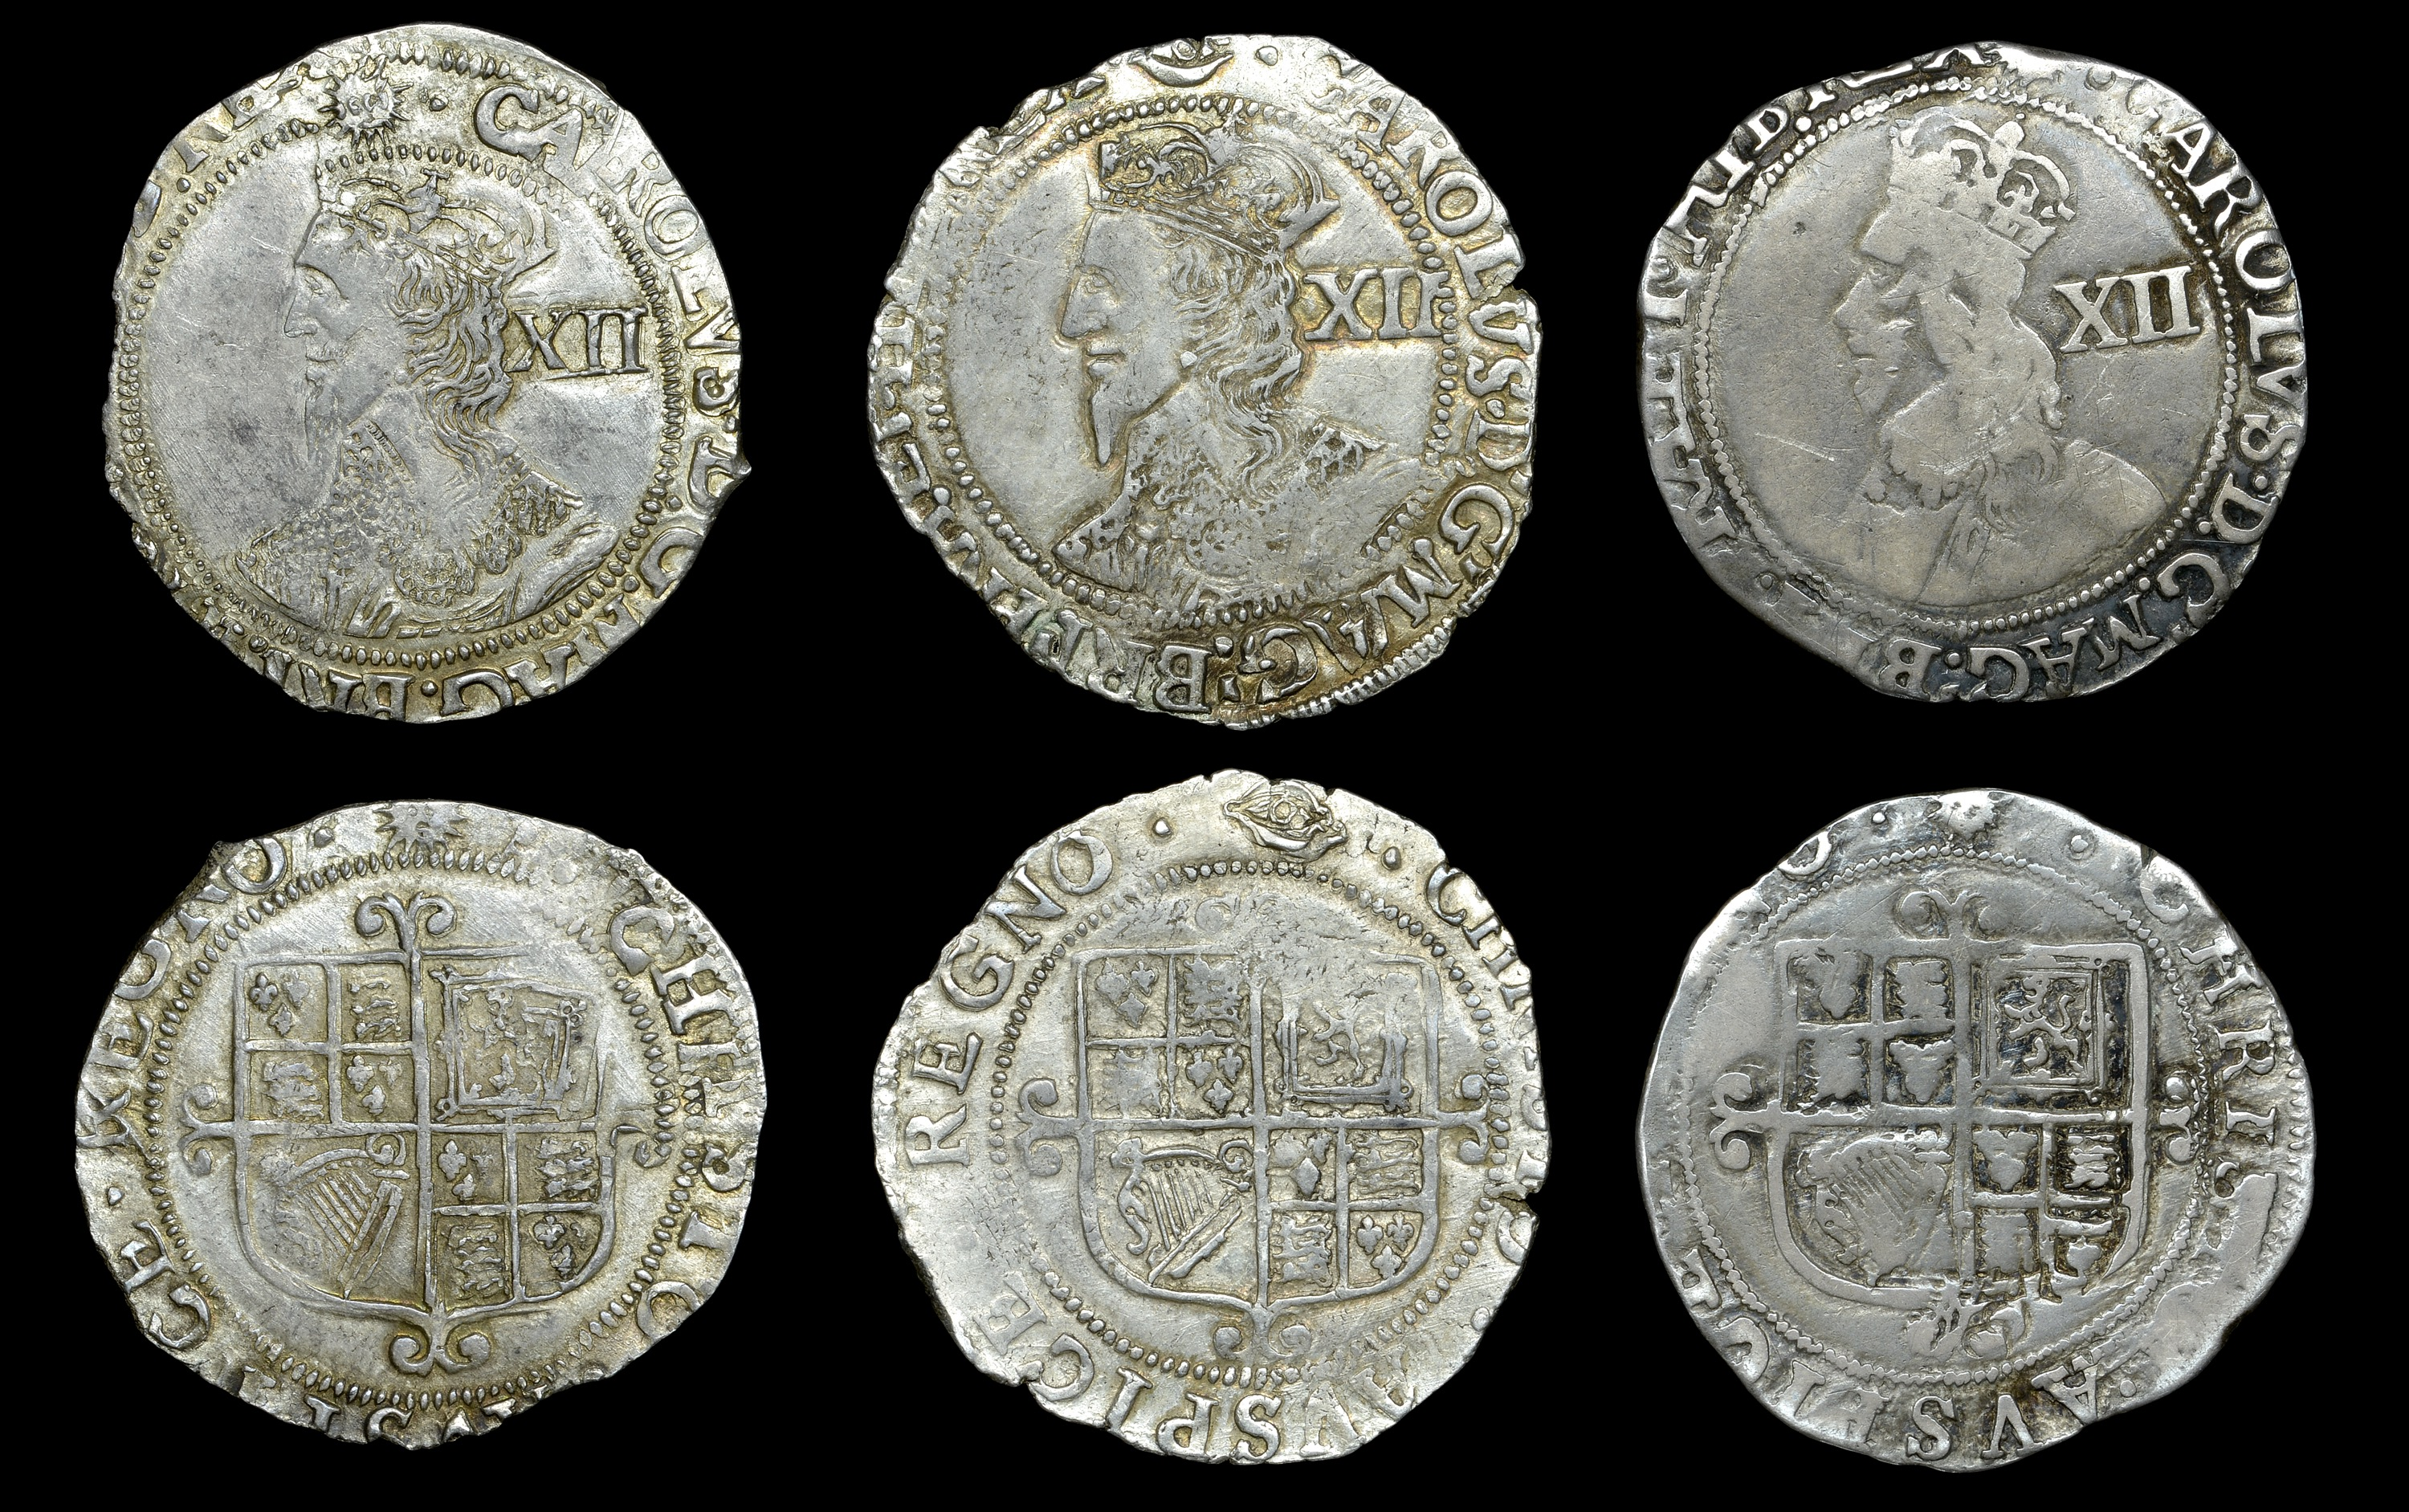 Lot 31 - The Collection of British Coins Formed by the Late Ray Inder (Part IV)